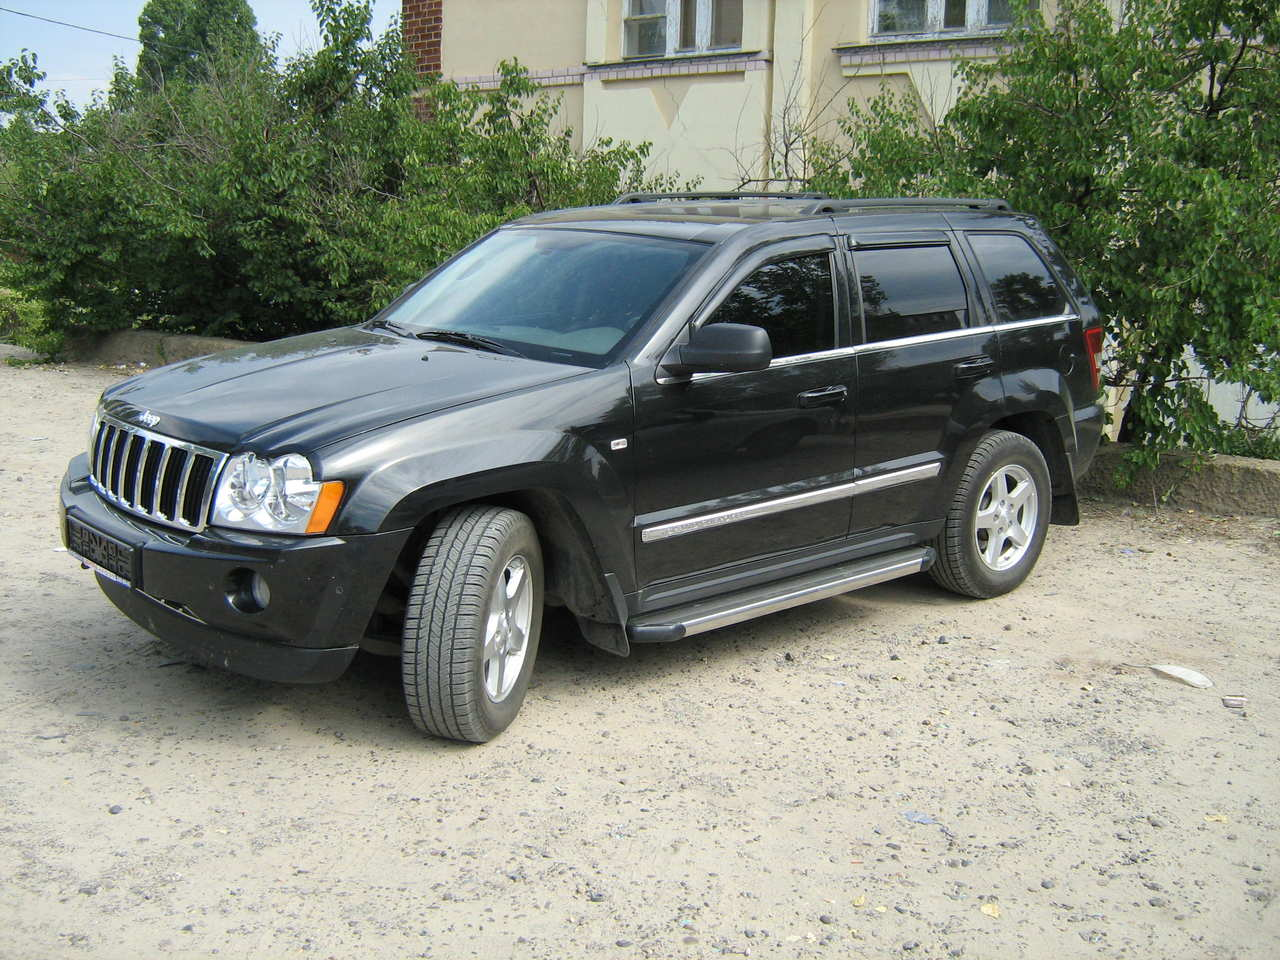 2006 jeep grand cherokee pictures 3000cc diesel. Black Bedroom Furniture Sets. Home Design Ideas